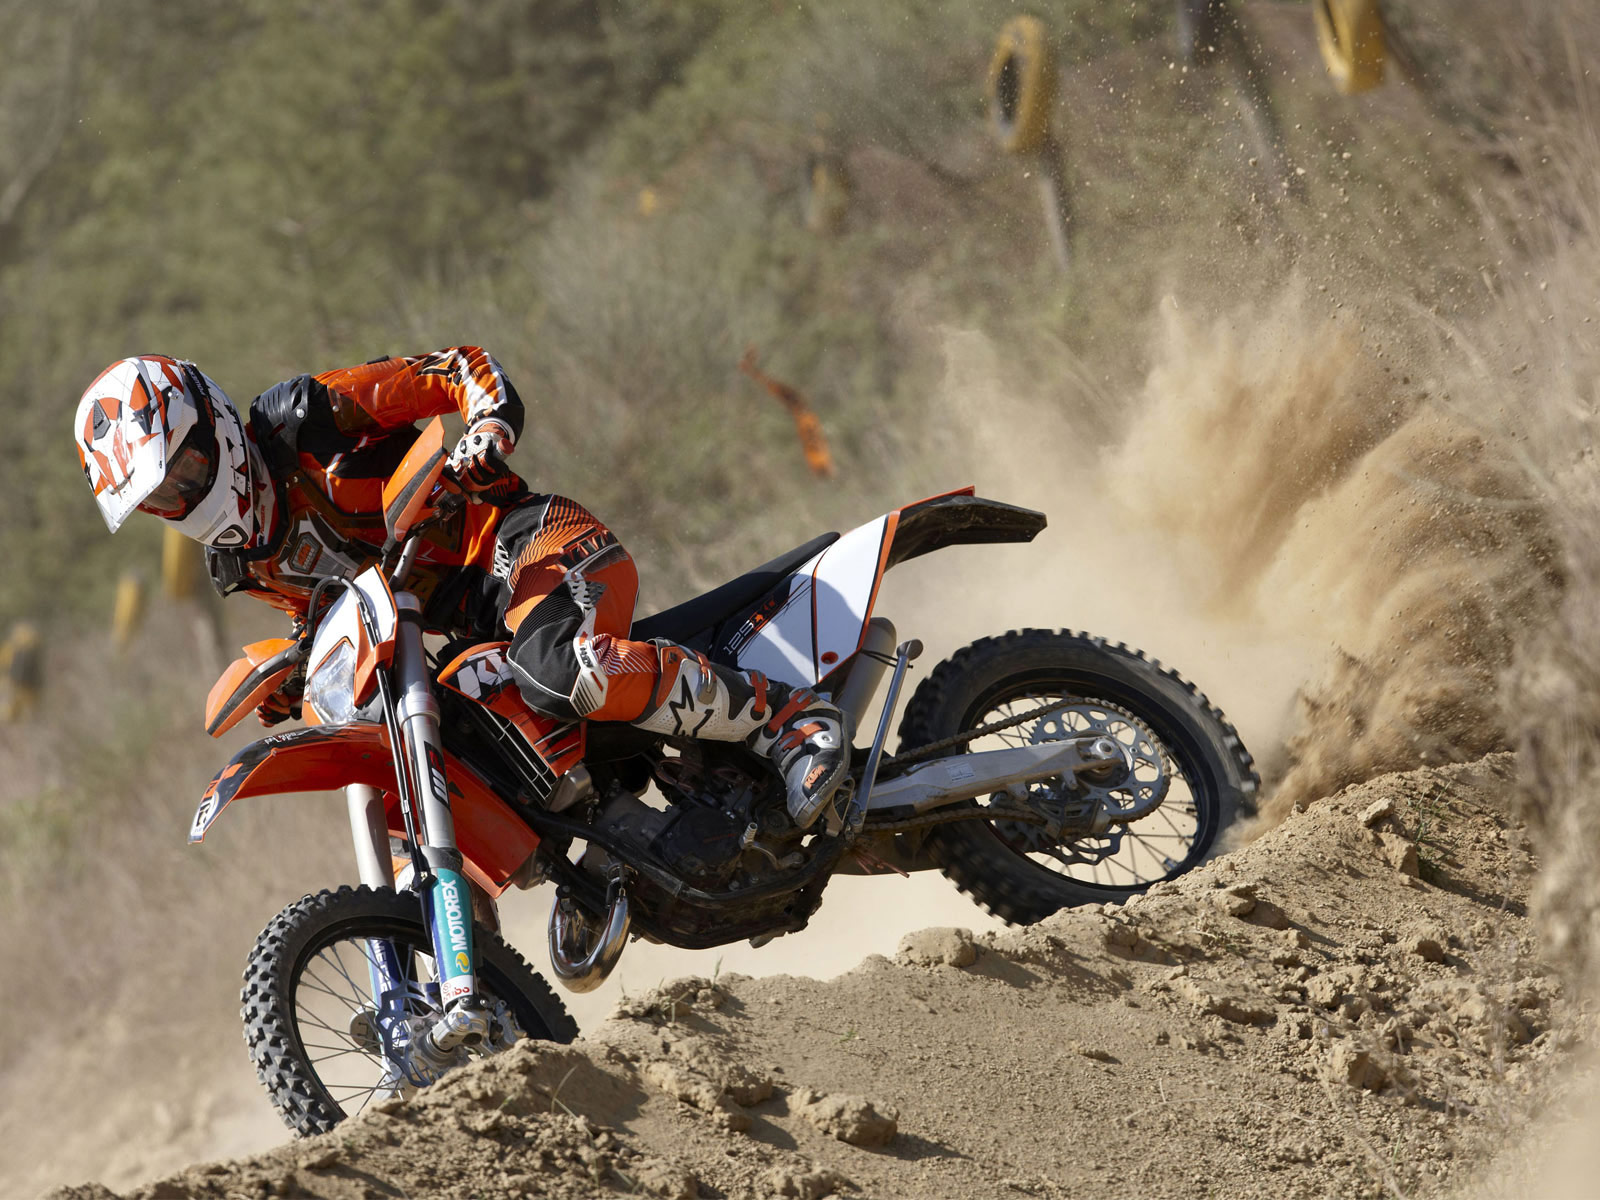 2010 Ktm 125 Exc Motorcycle Desktop Wallpaper